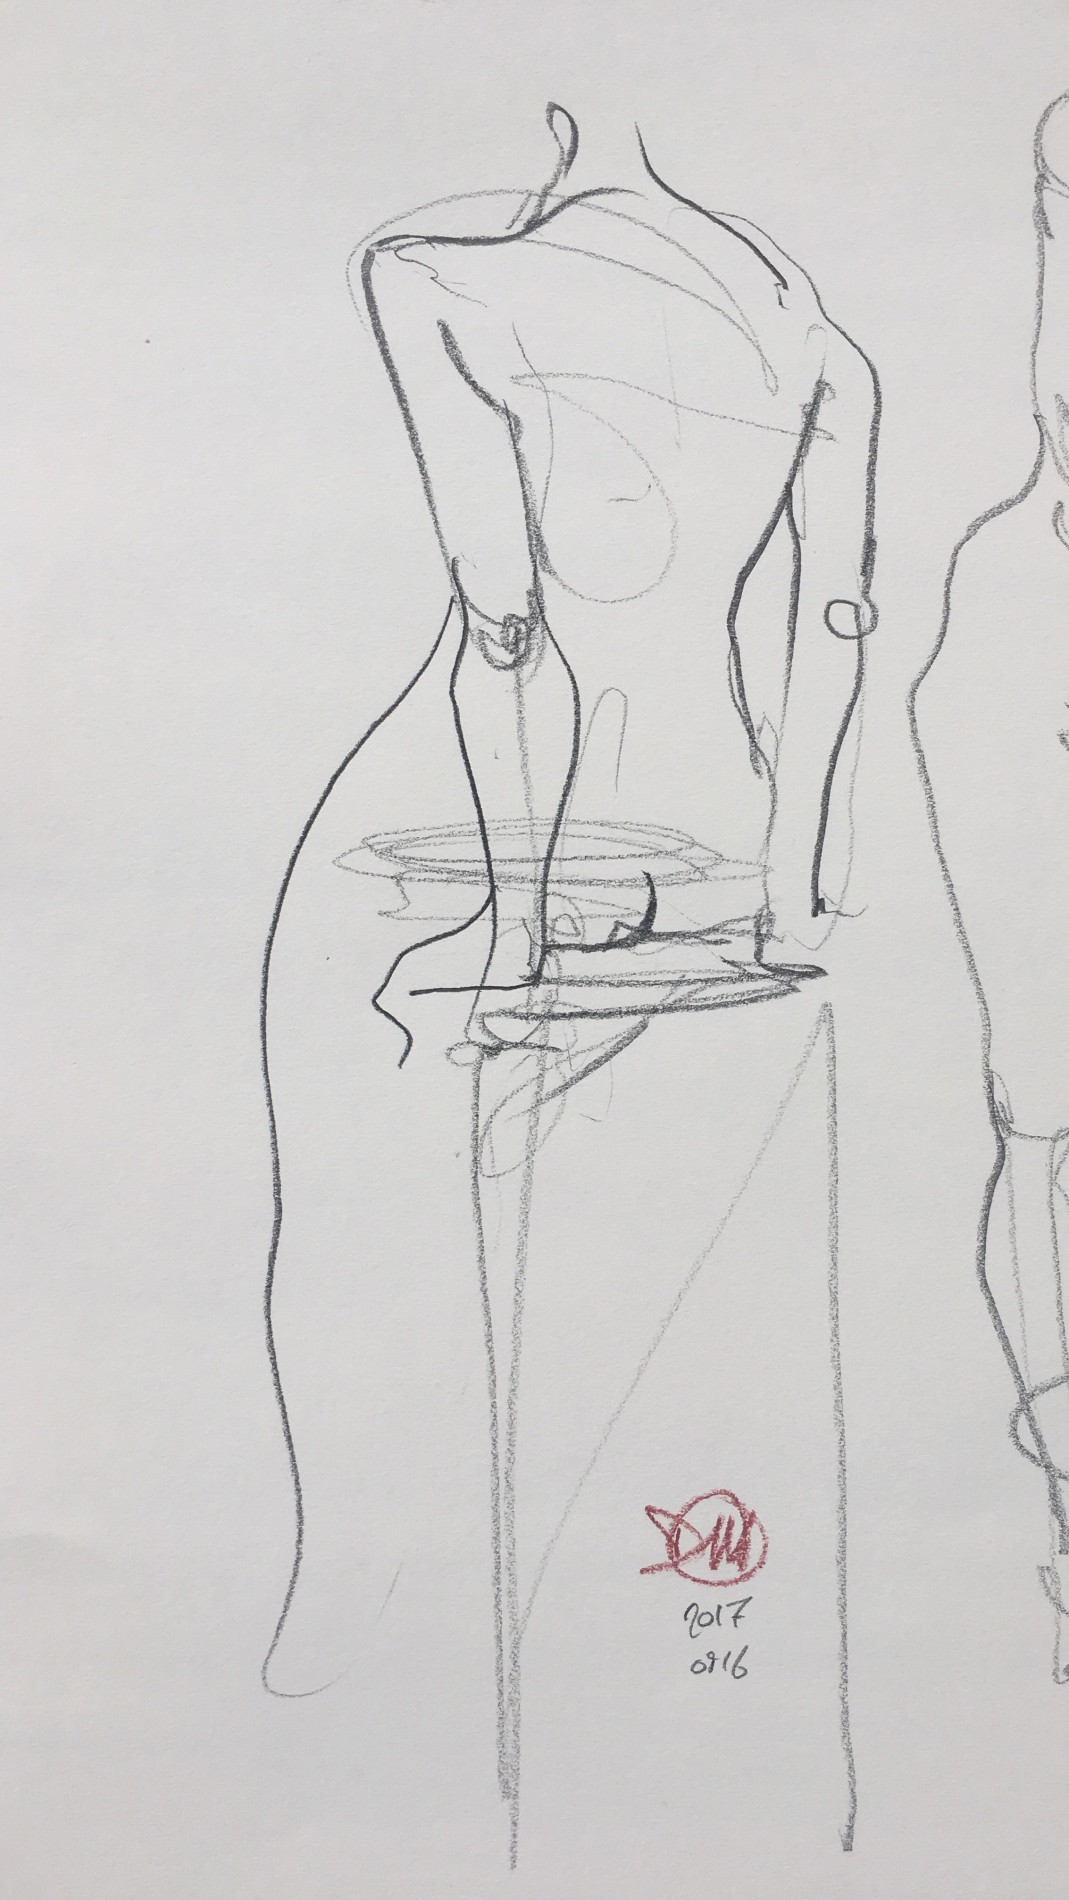 Life drawing at Basis